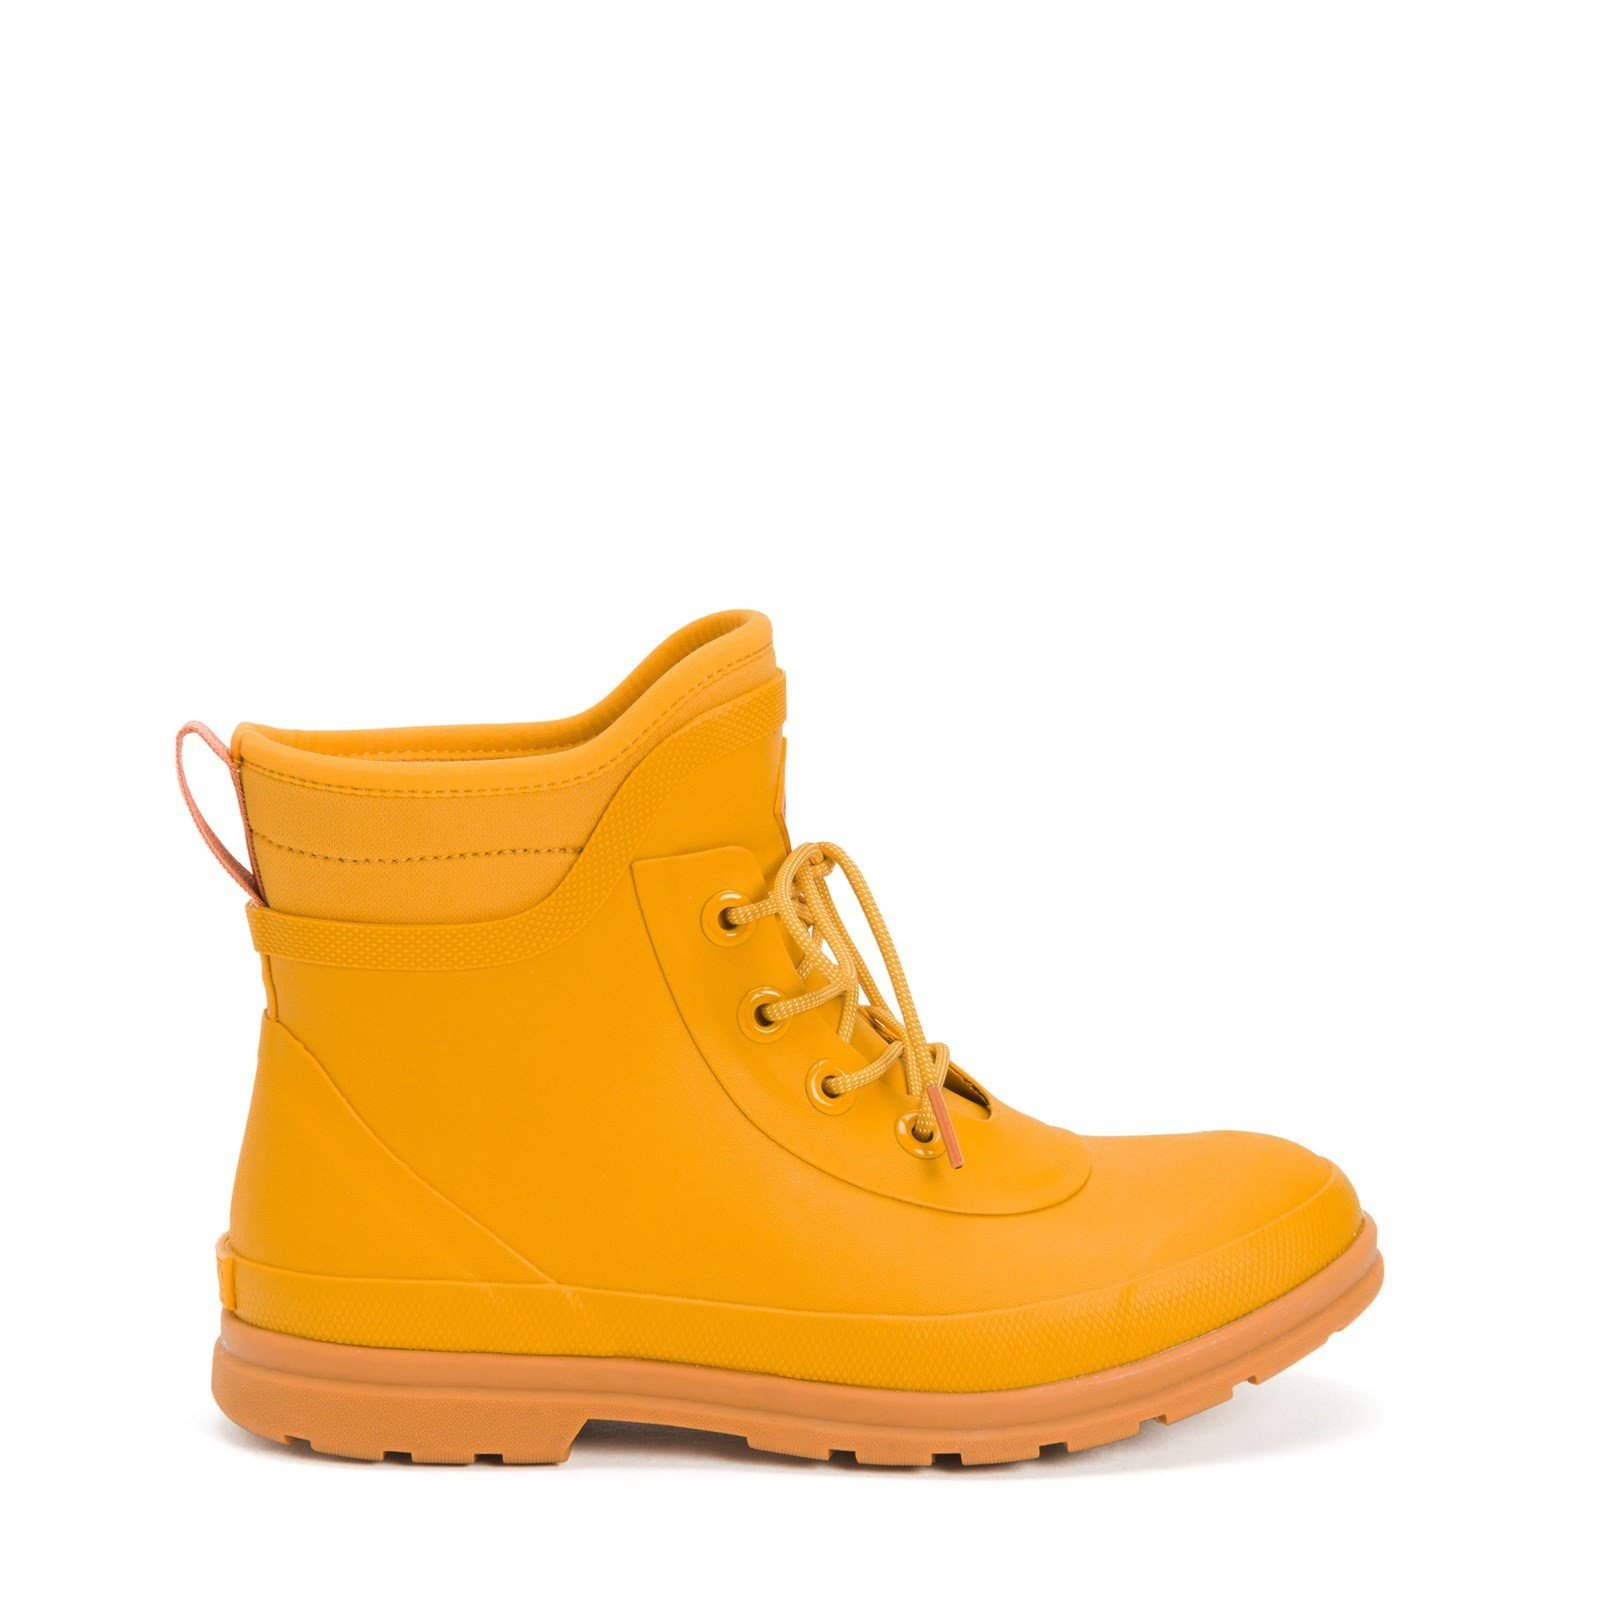 Muck Boots Women's Originals Lace Up Ankle Boot Various Colours 30079 - Sunflower 3